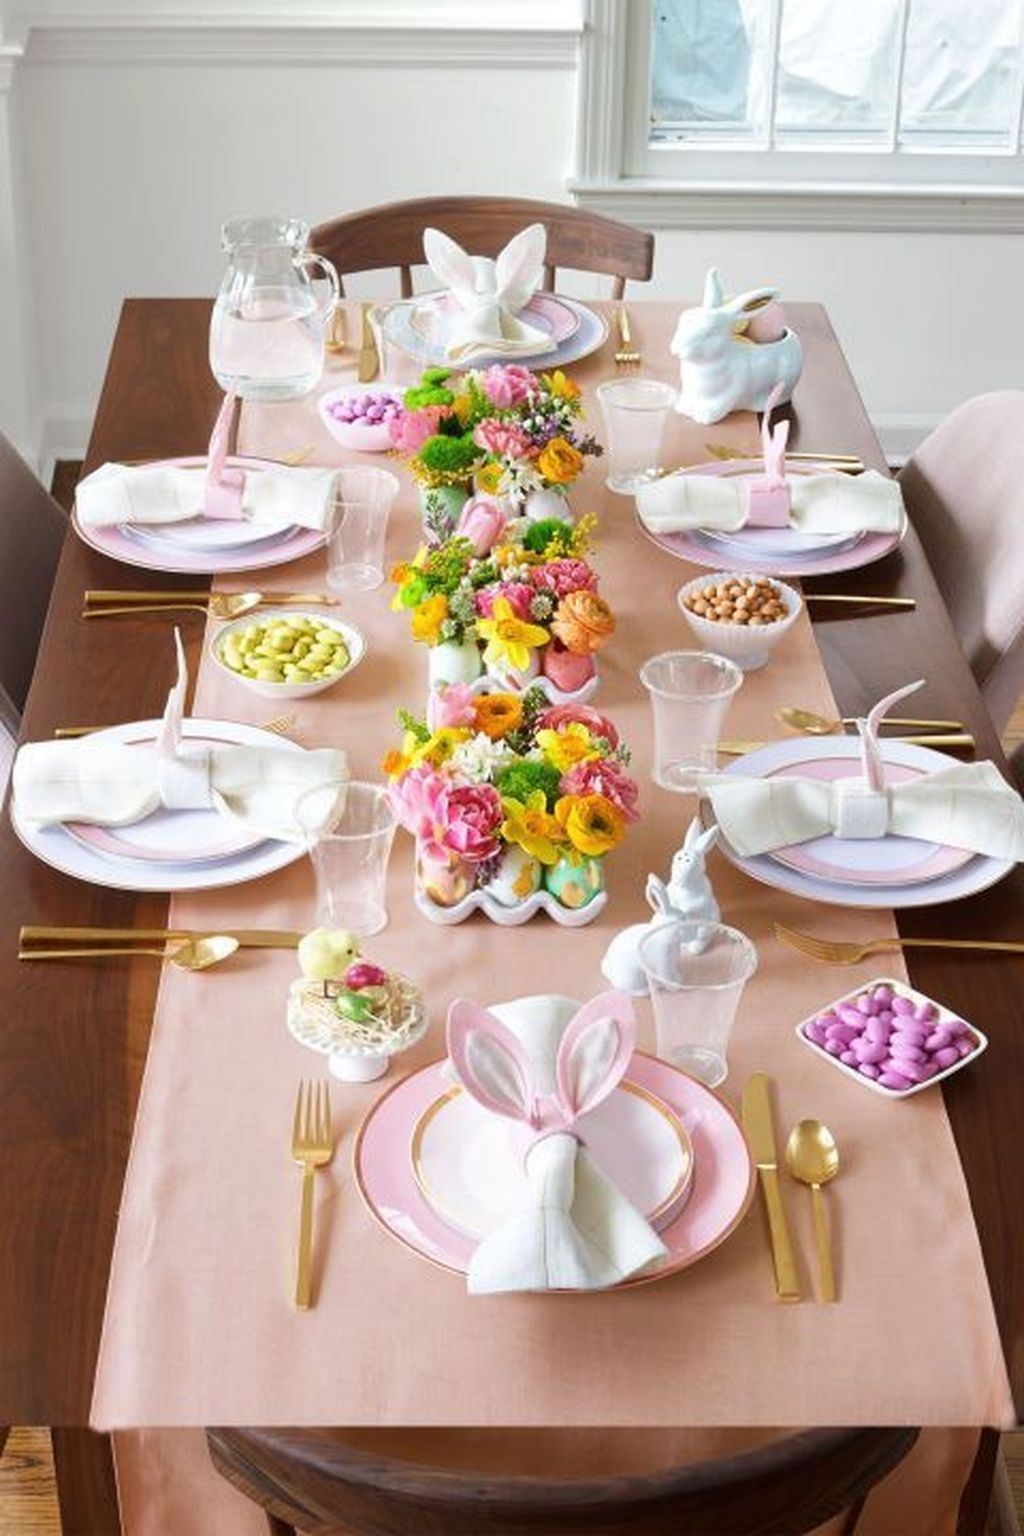 Superb Easter Table Decoration Ideas To Give Your Tablescape A Festive Vibe 50